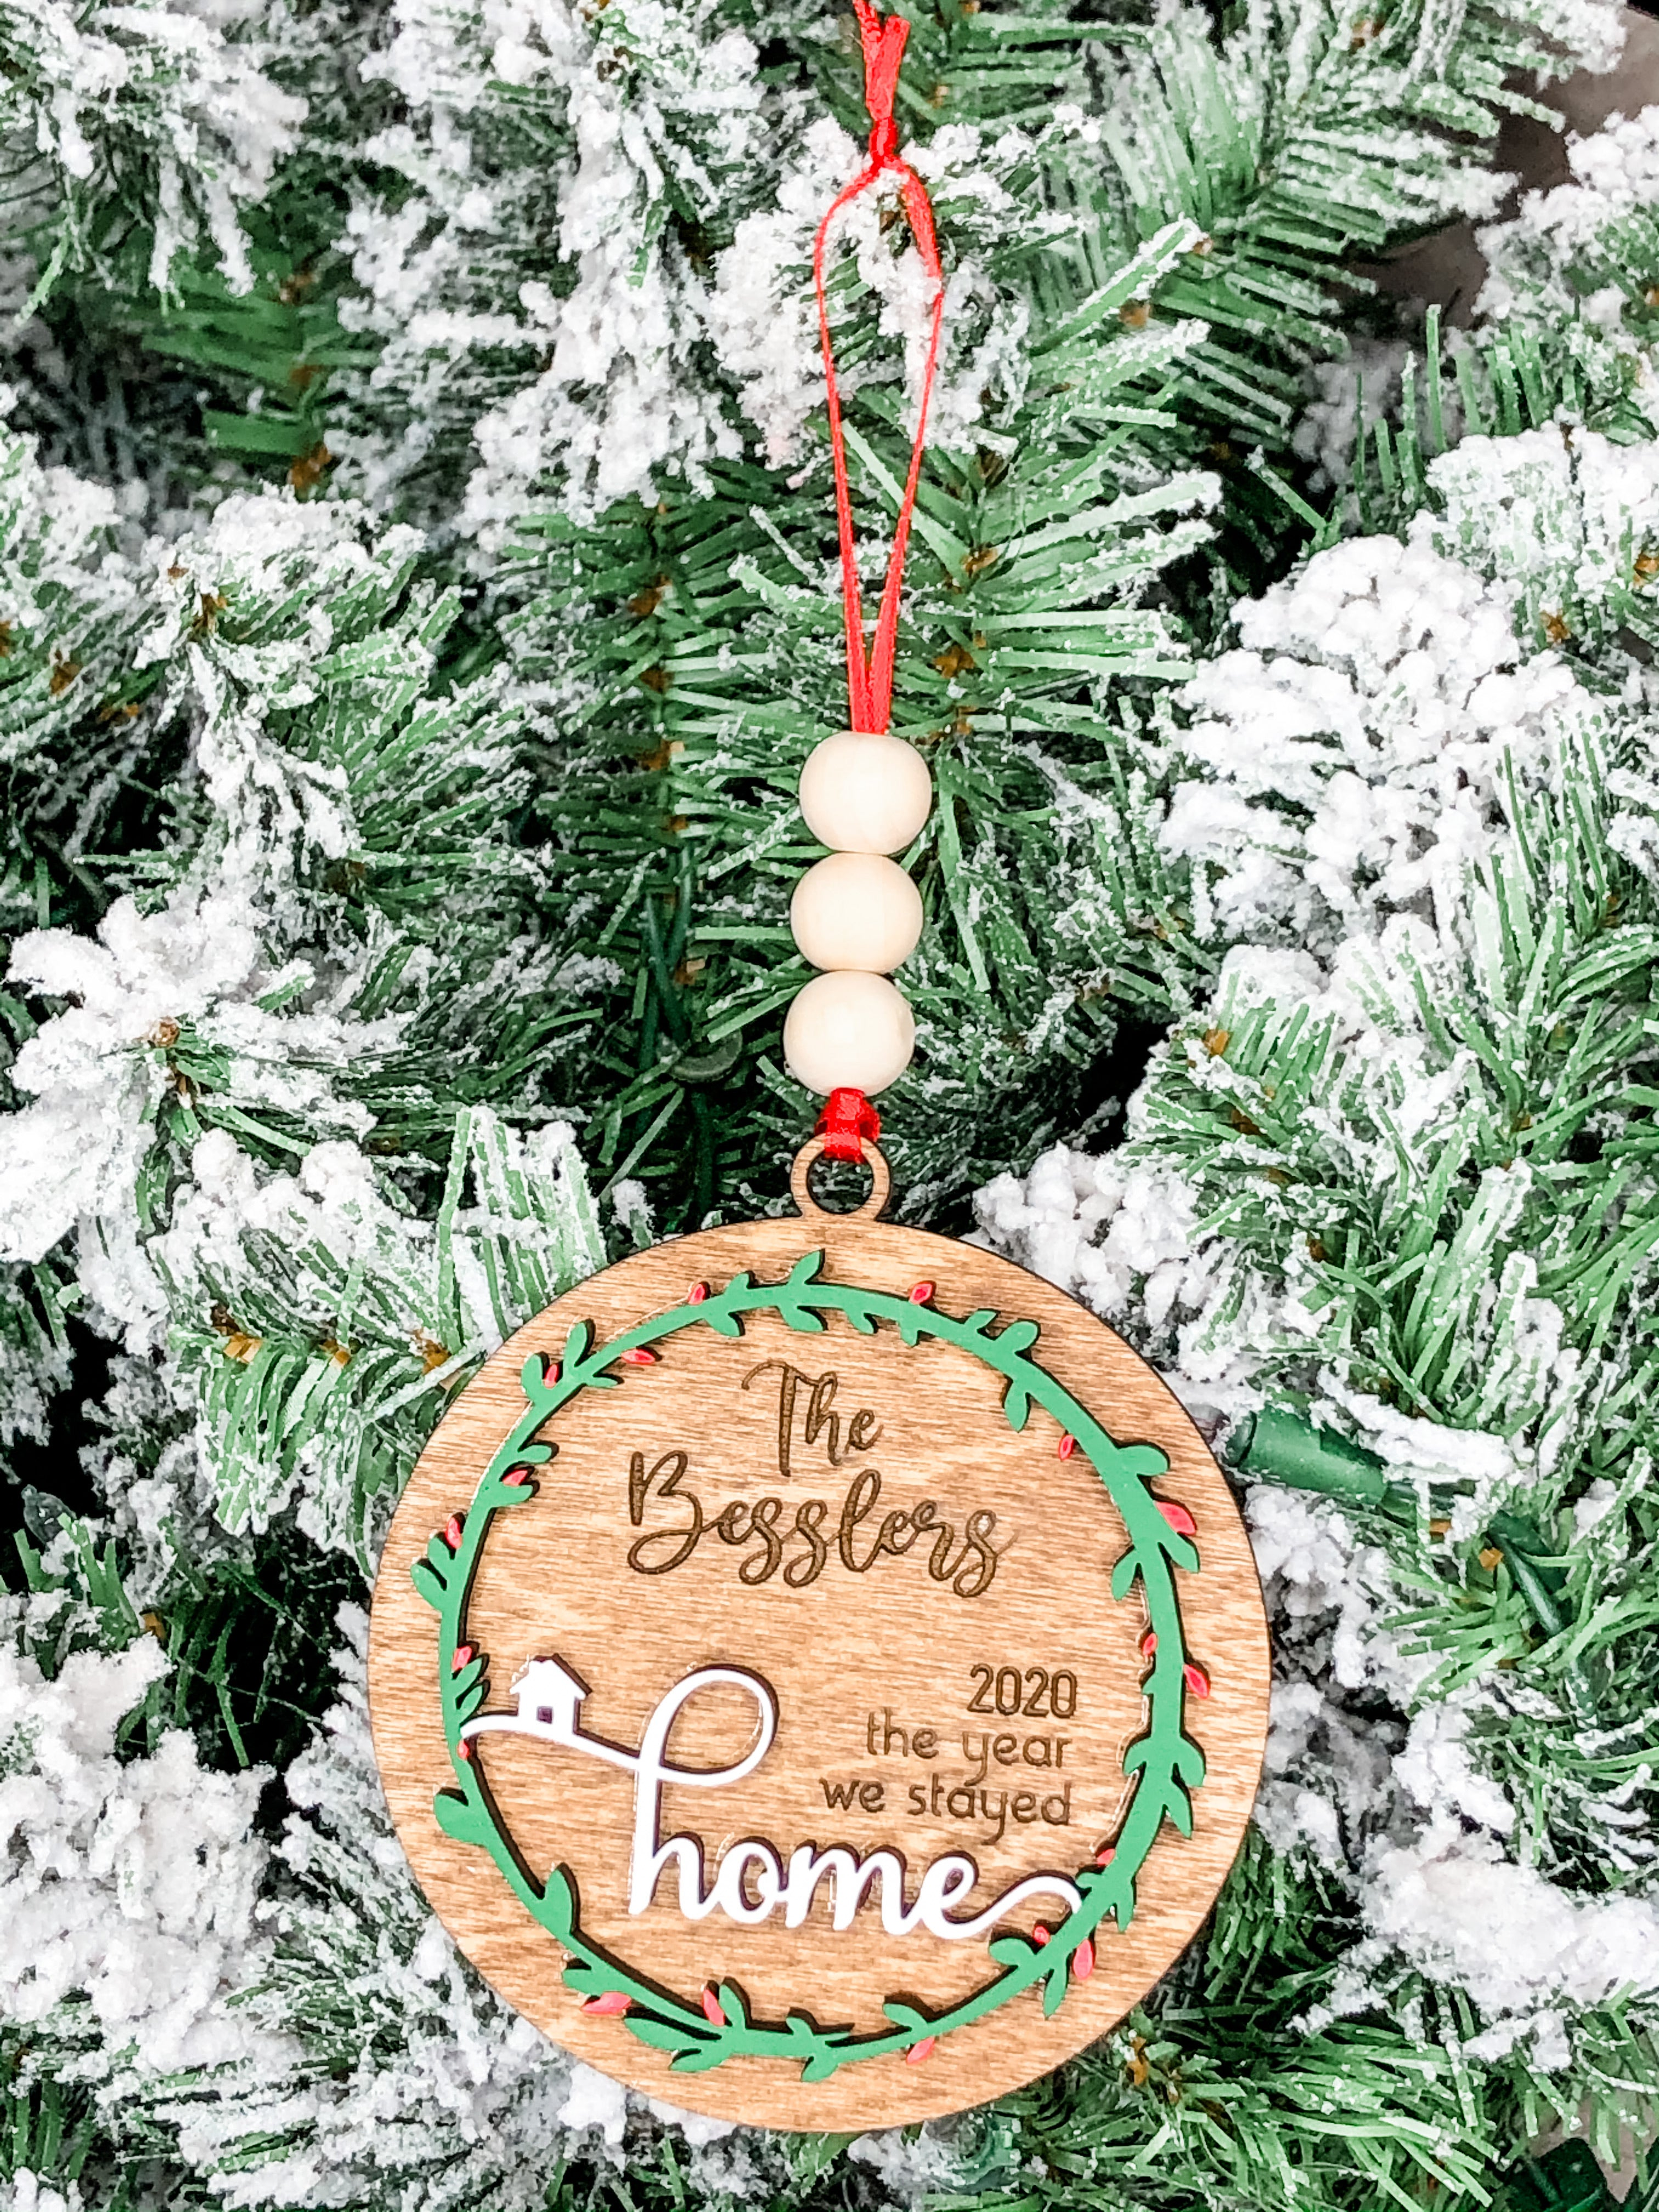 2020 Stayed Home Ornament *personalized*